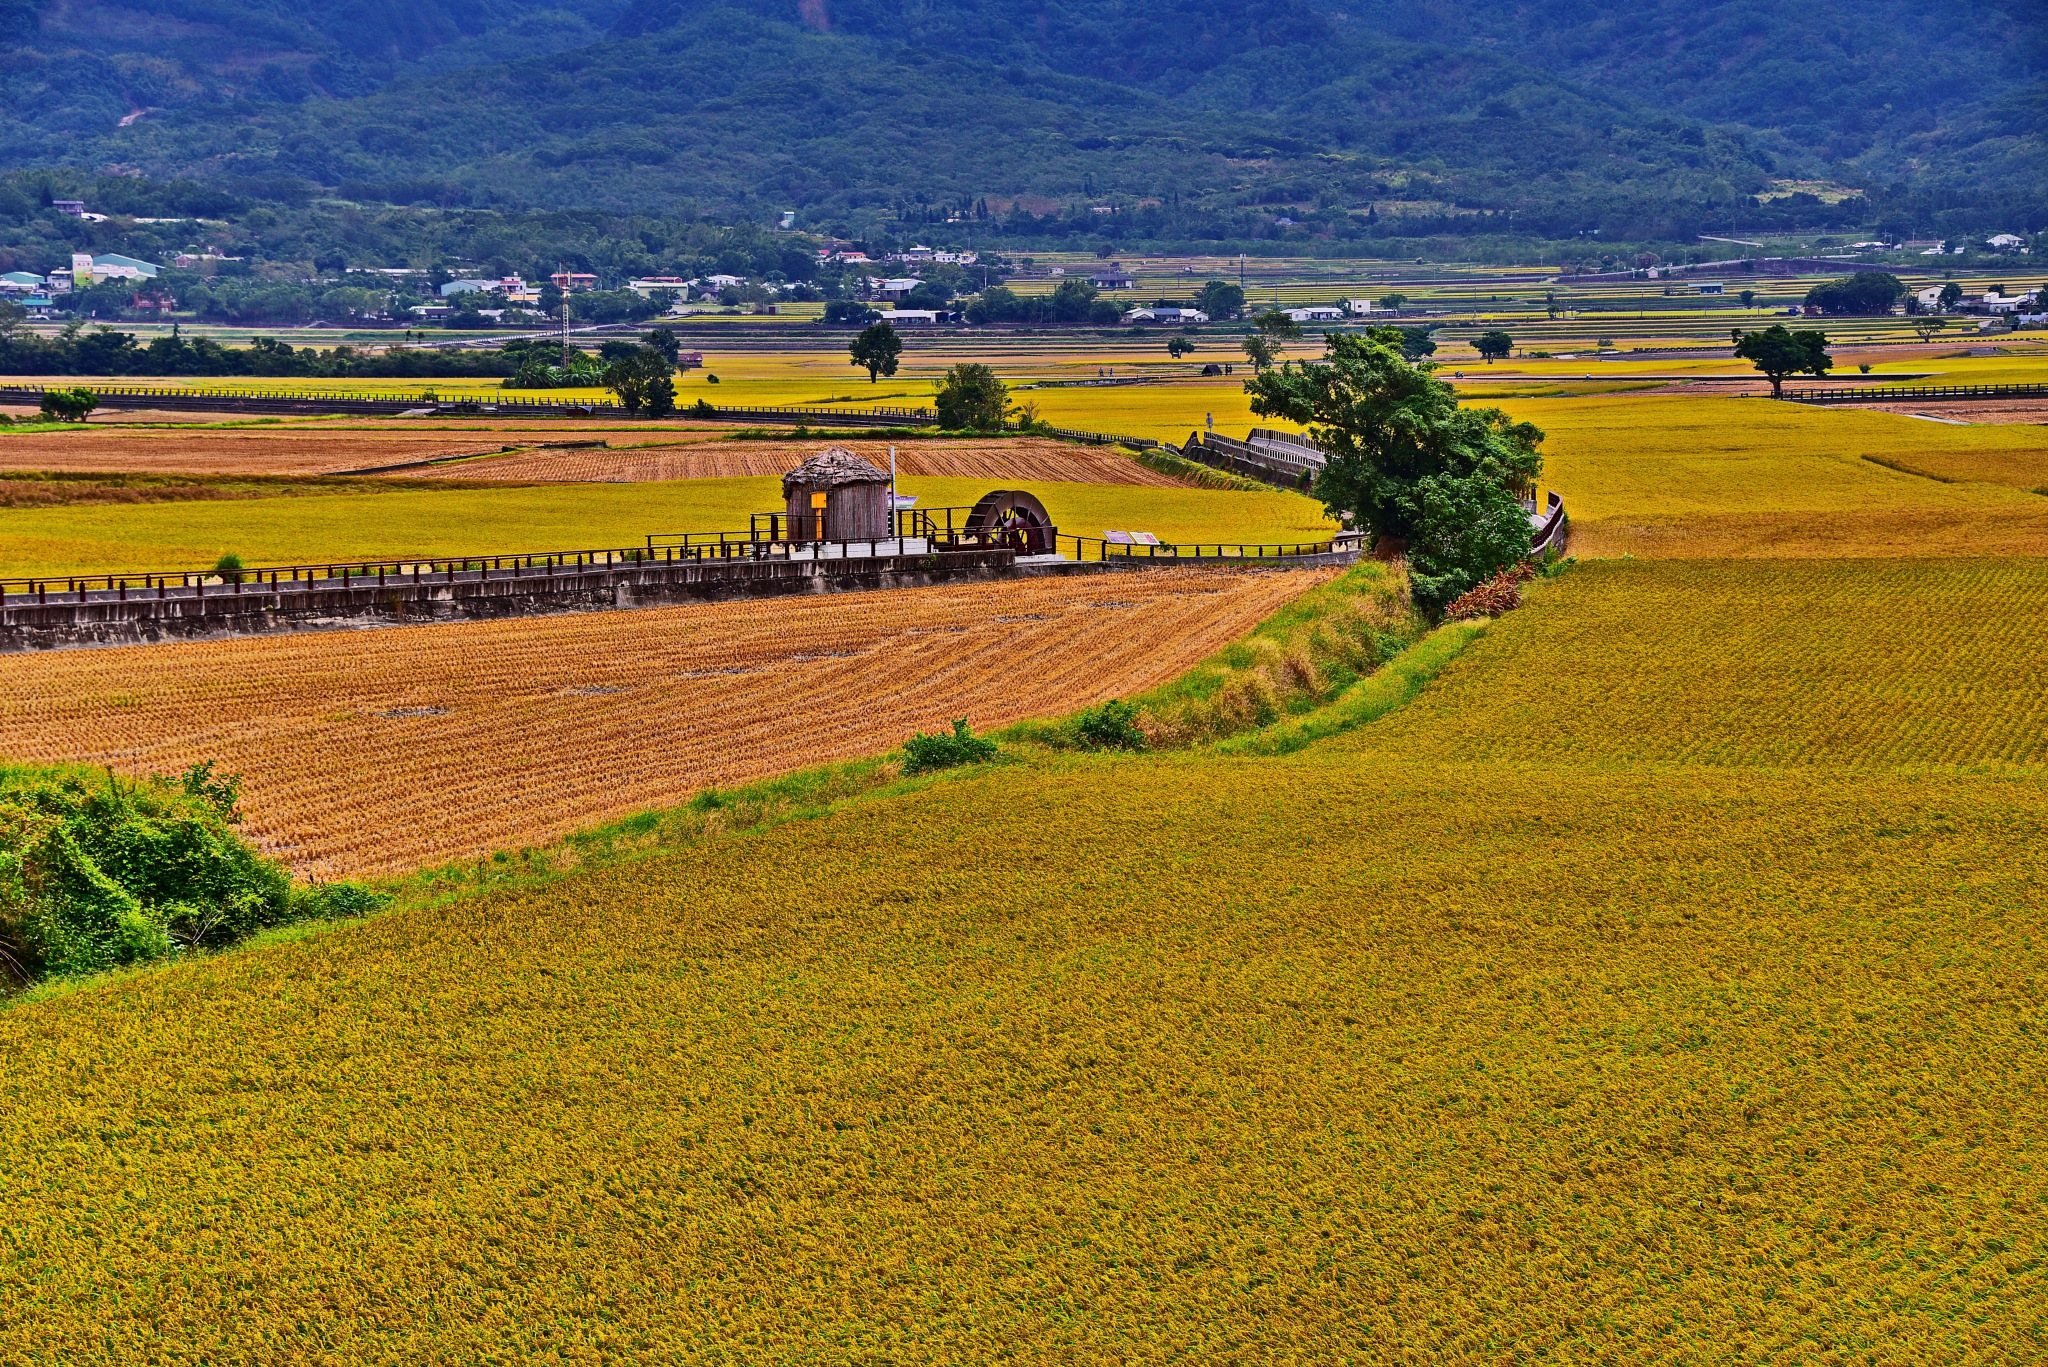 Rural scenery ~ paddy field. by petertyghbn